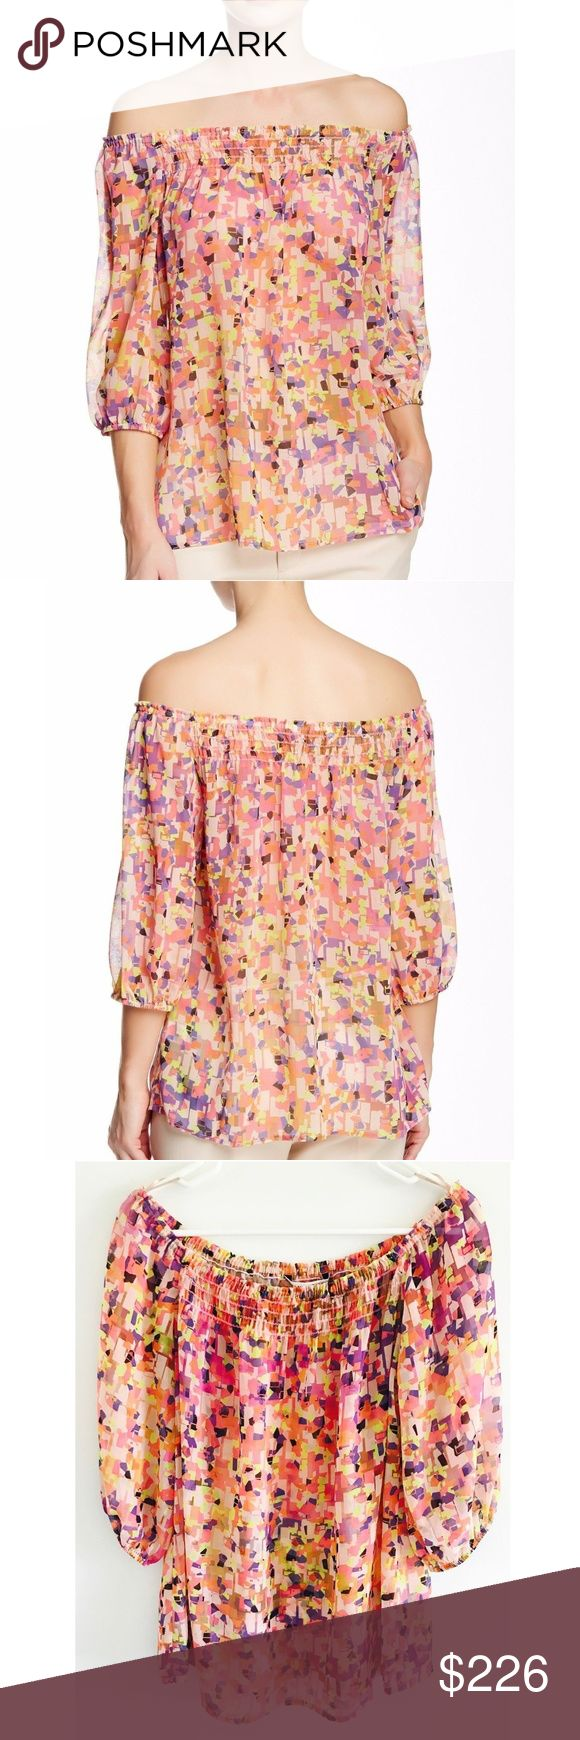 "Trina Turk Off the Shoulder Reid Blouse in Size S TRINA TURK OFF THE SHOULDER REID BLOUSE 3/4 LENGTH SLEEVES ALL OVER PRINT SMOCKED YOKE UNLINED APPROX. 24"" LENGTH 100% POLYESTER IMPORTED NORDSTROM RACK TAG ATTACHED Trina Turk Tops Blouses"